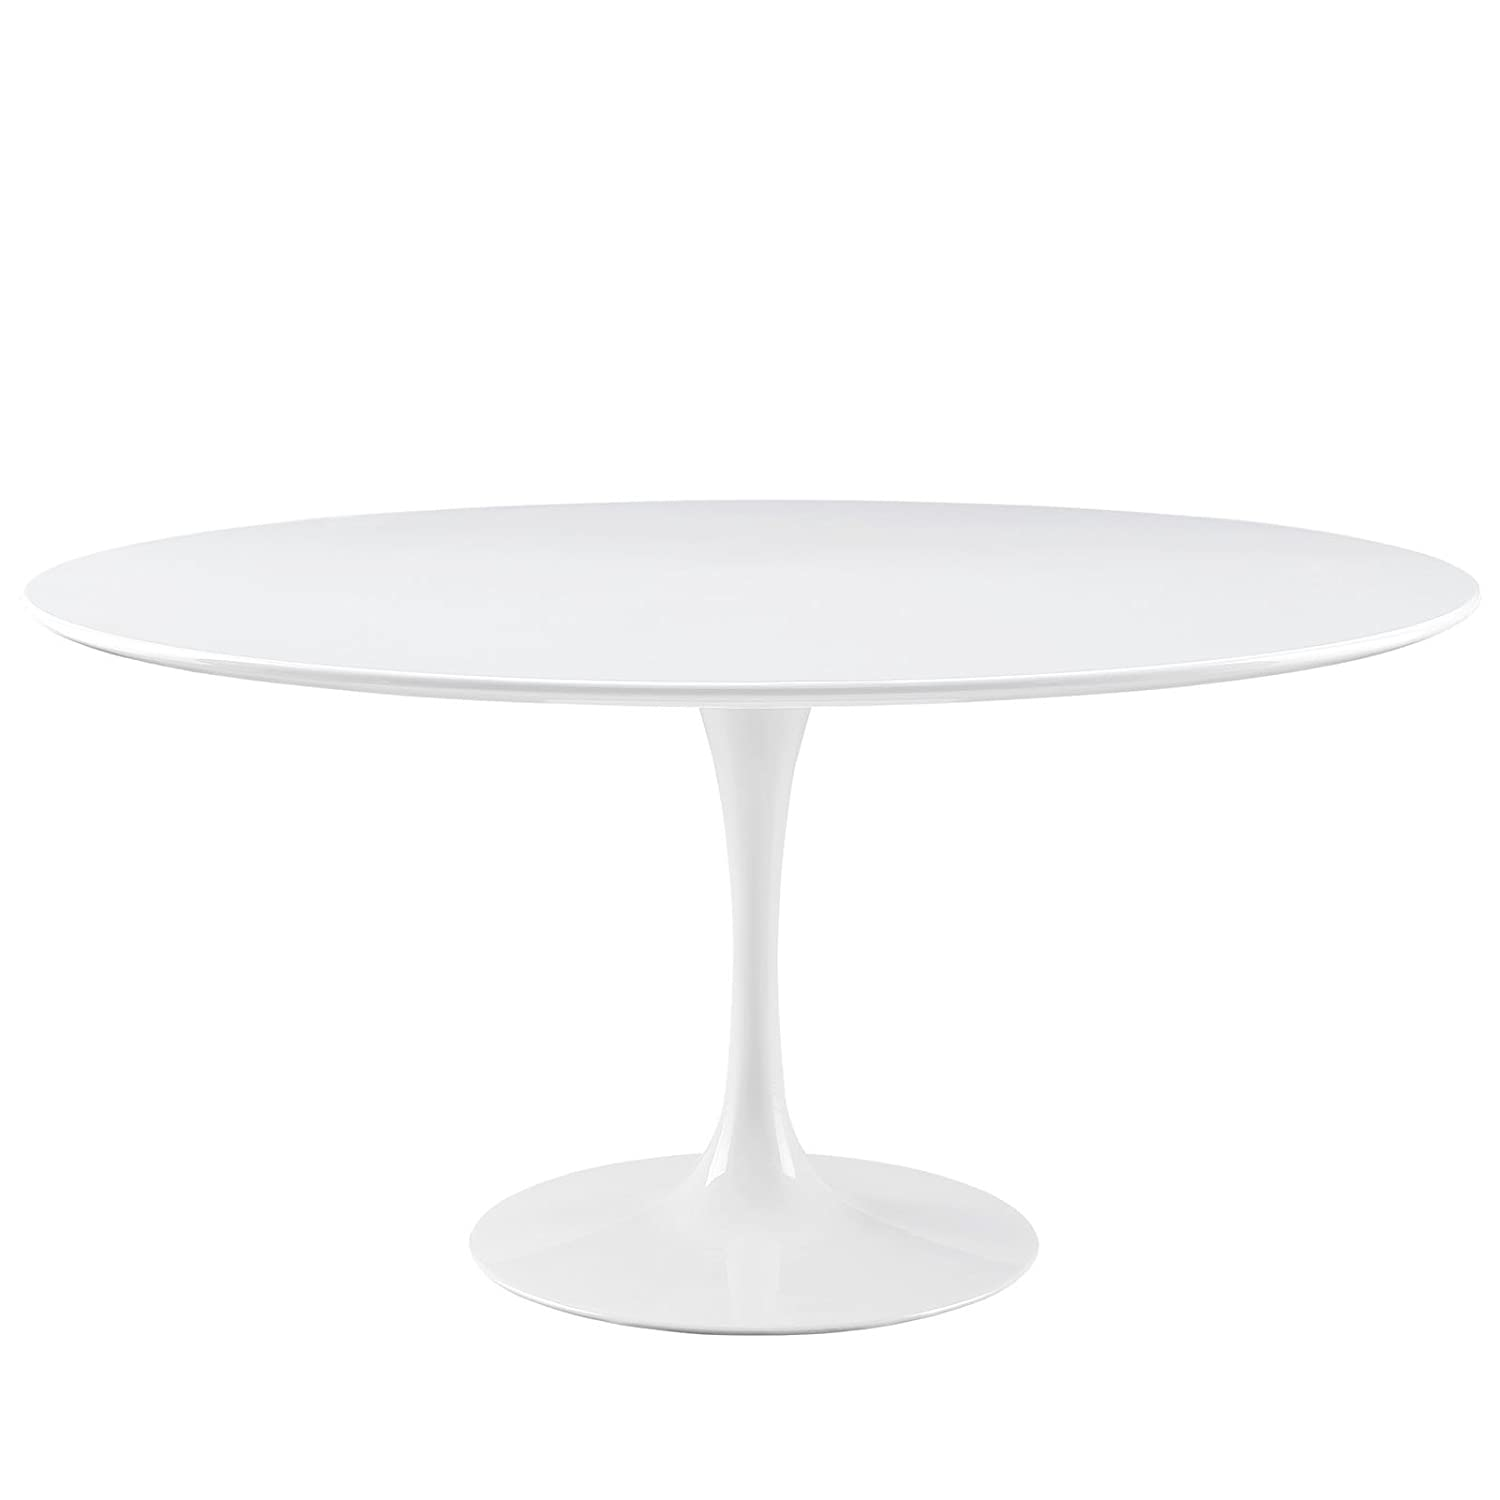 Modway Lippa 60 Mid-Century Modern Kitchen and Dining Table with Round Top and Pedestal Base in White